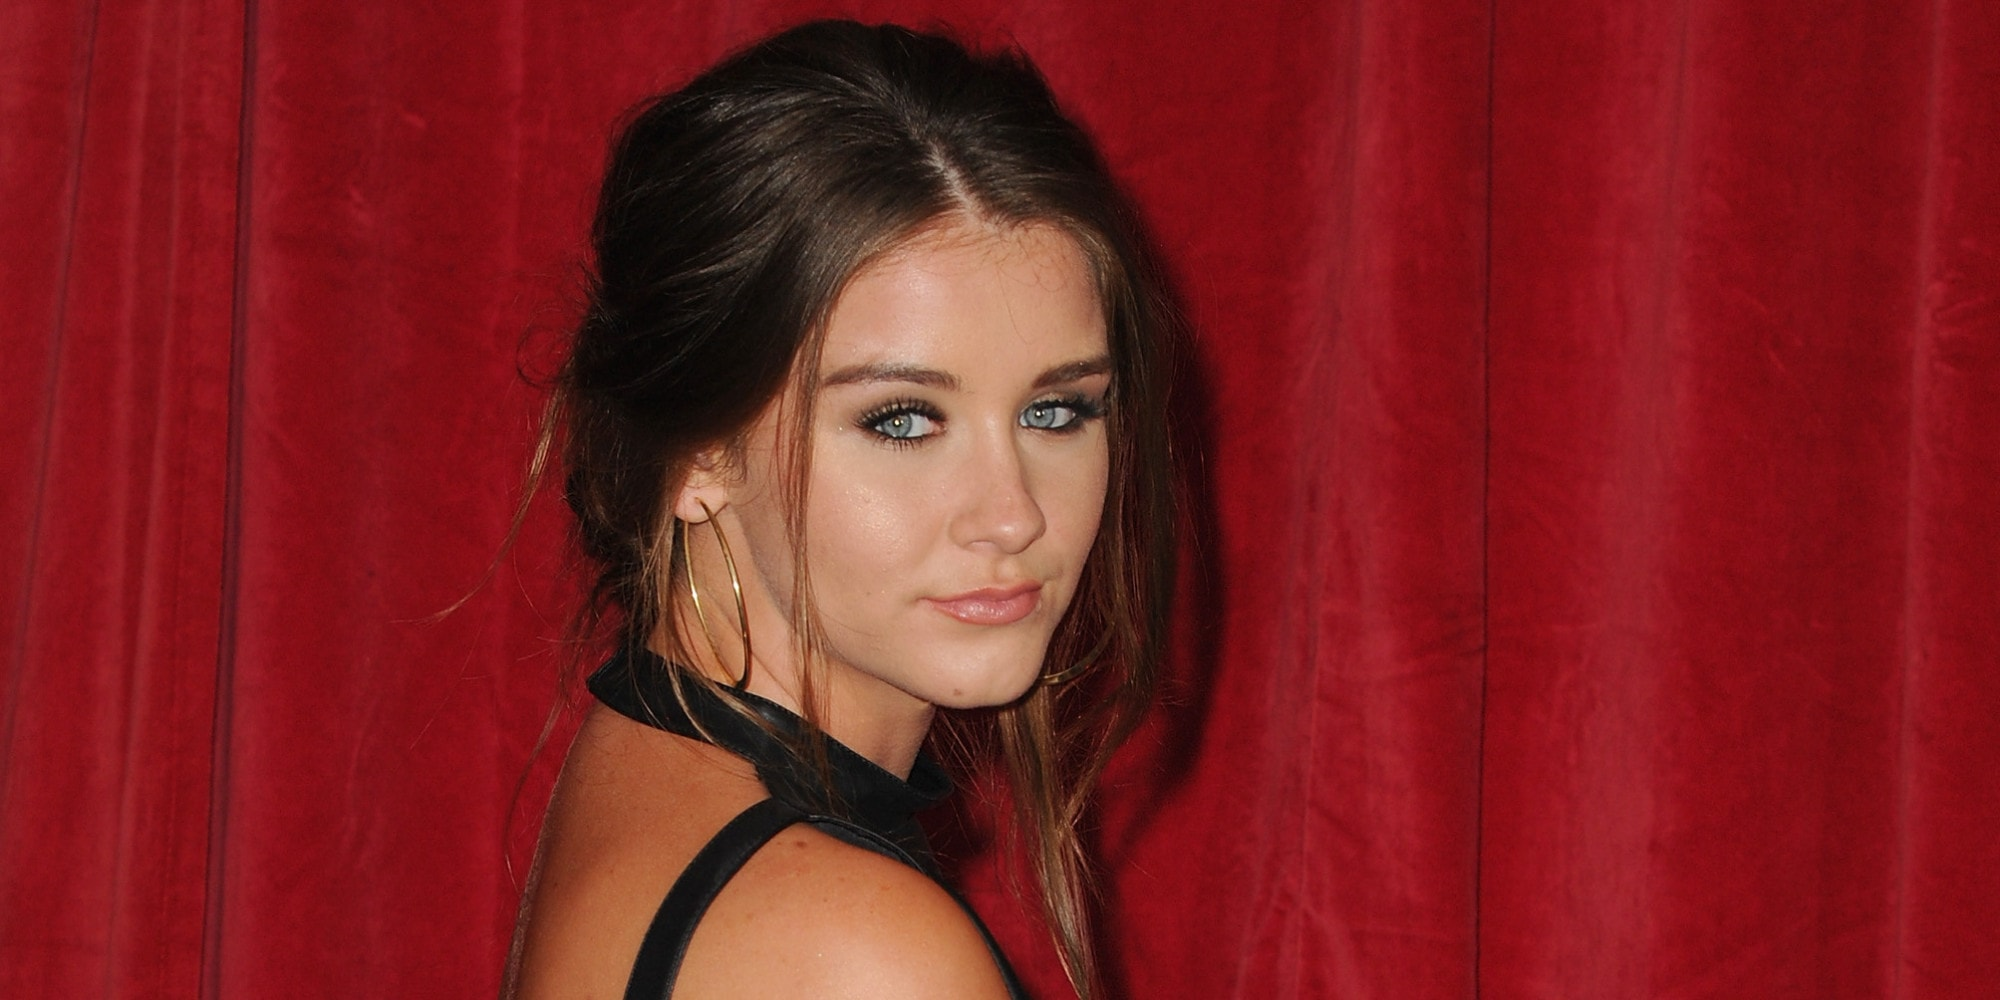 Manchester United Iphone Wallpaper Hd Brooke Vincent Hd Wallpapers 7wallpapers Net